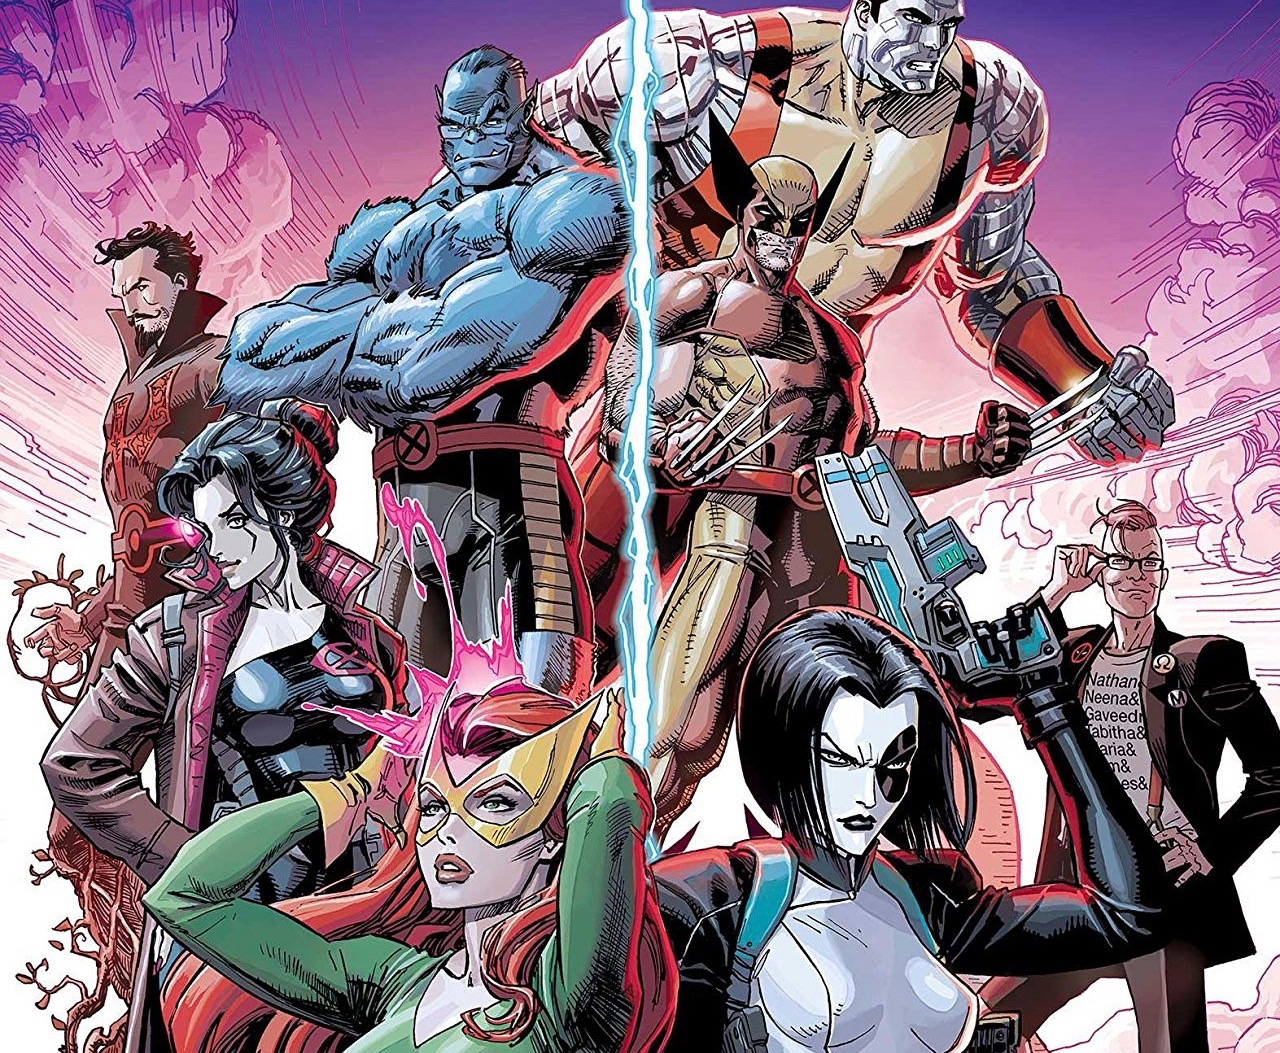 Marvel Comics reveals expanded May Marvel Unlimited titles (27,000issues!) including new Dawn of X titles